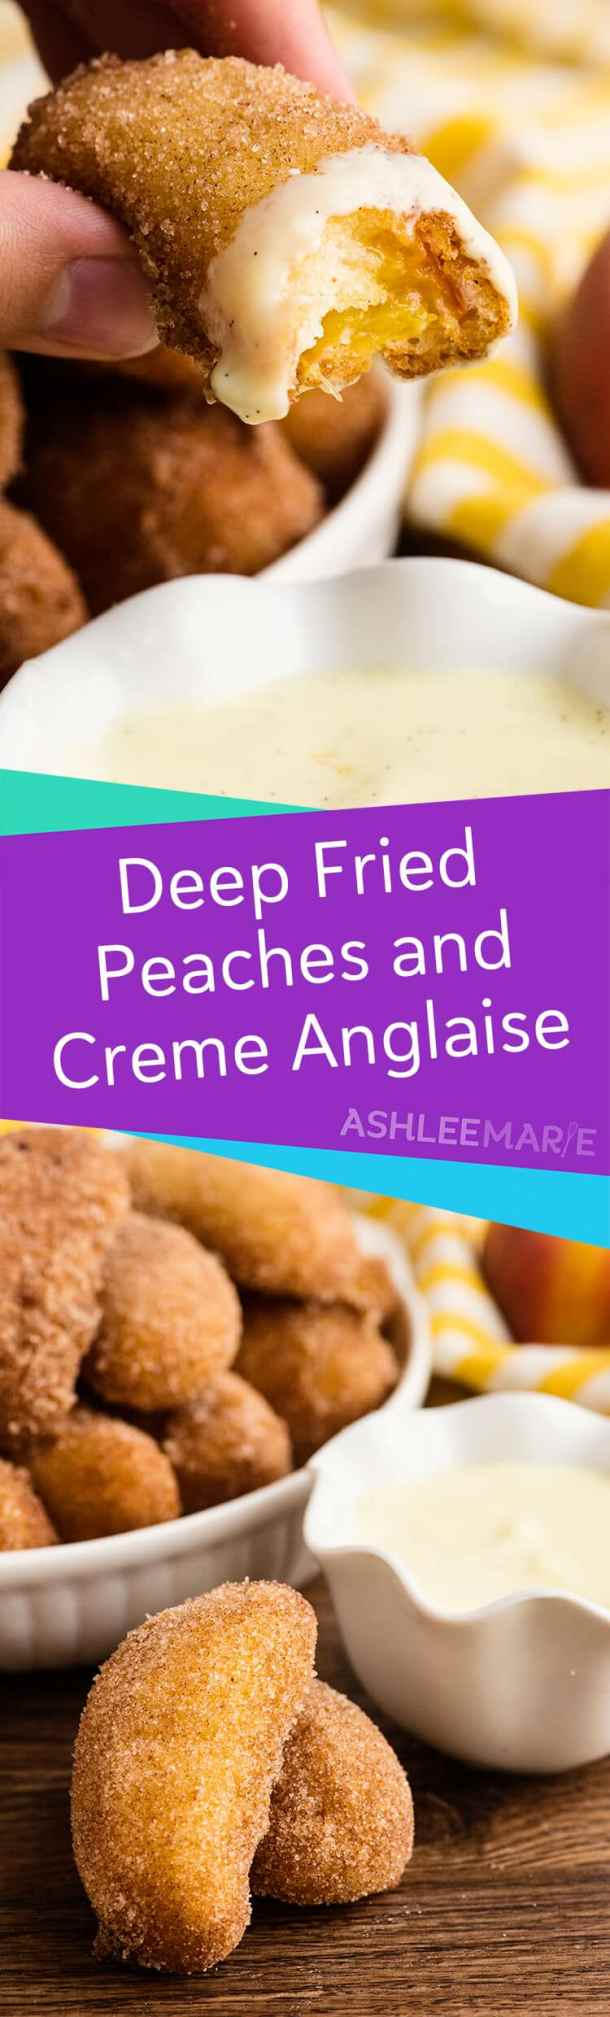 deep fried peaches and creme anglaise recipe and video